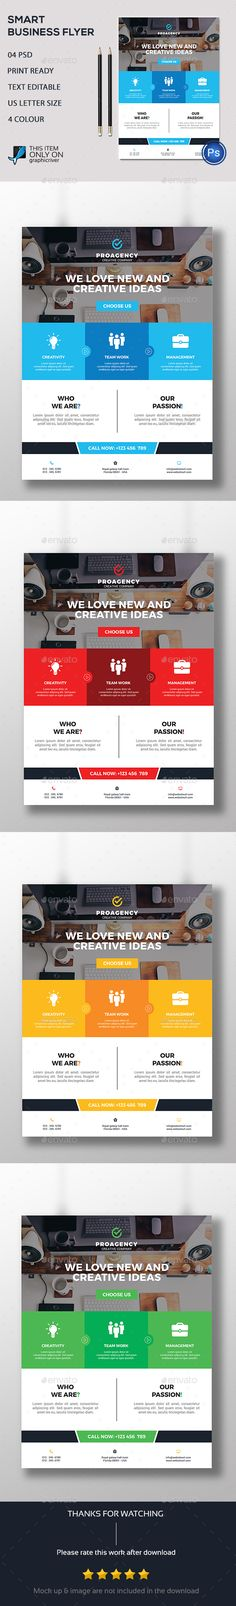 Marketing Business Flyer Template Psd  Flyer Templates